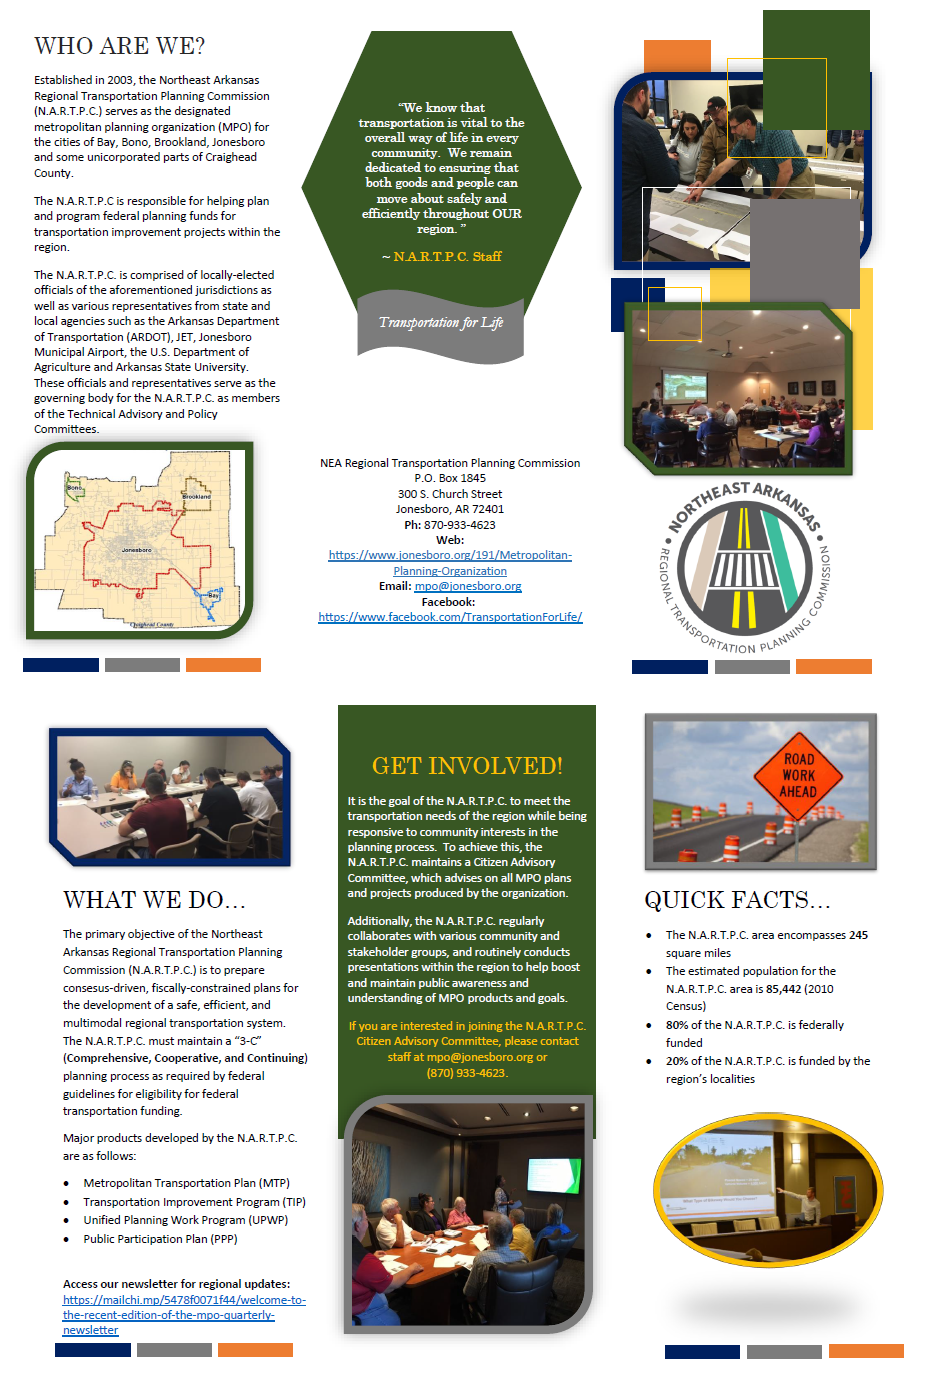 Official informational brochure for the MPO